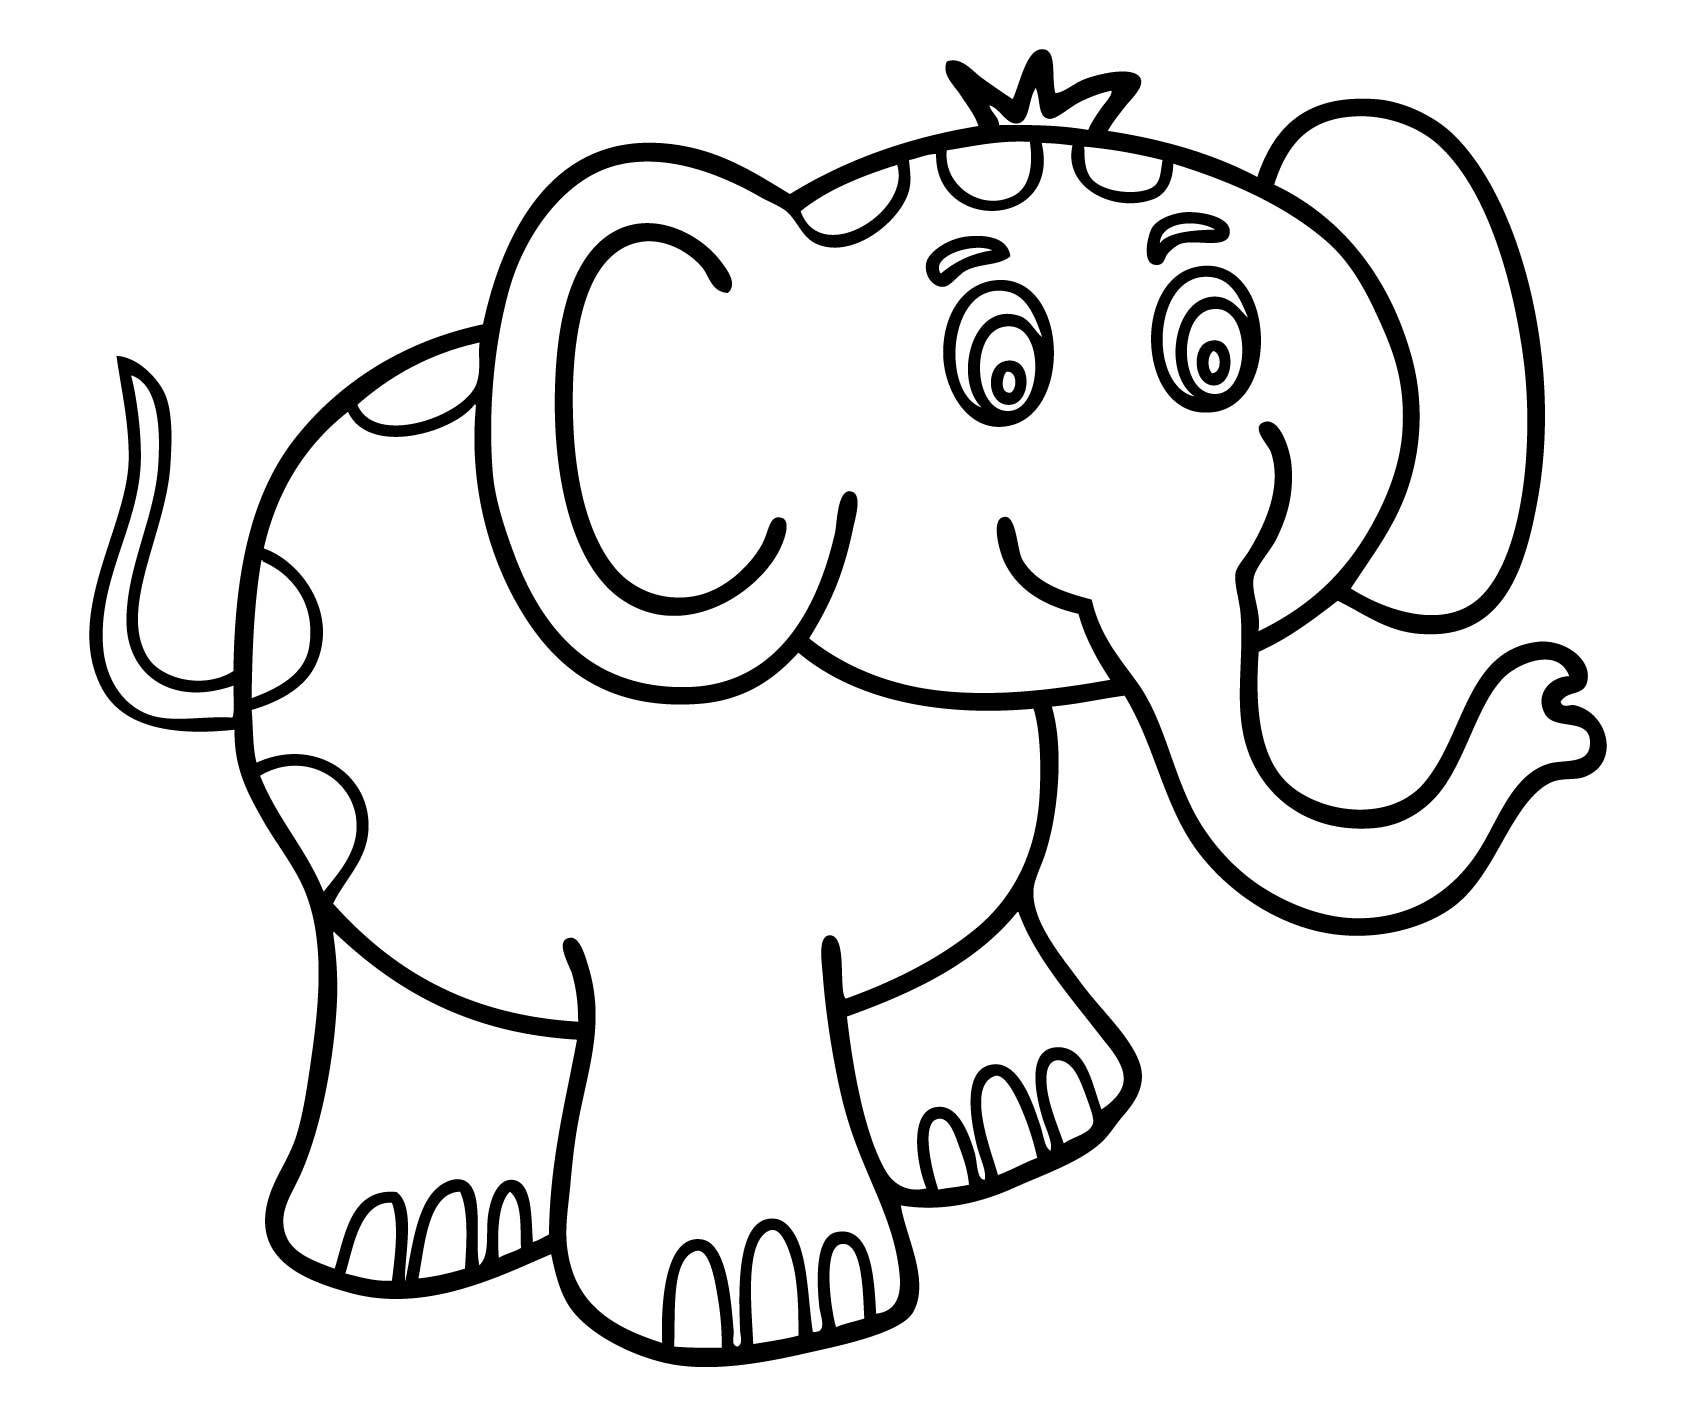 Adult Beauty Coloring Page For Toddlers Images top coloring pages for toddlers kids gallery images